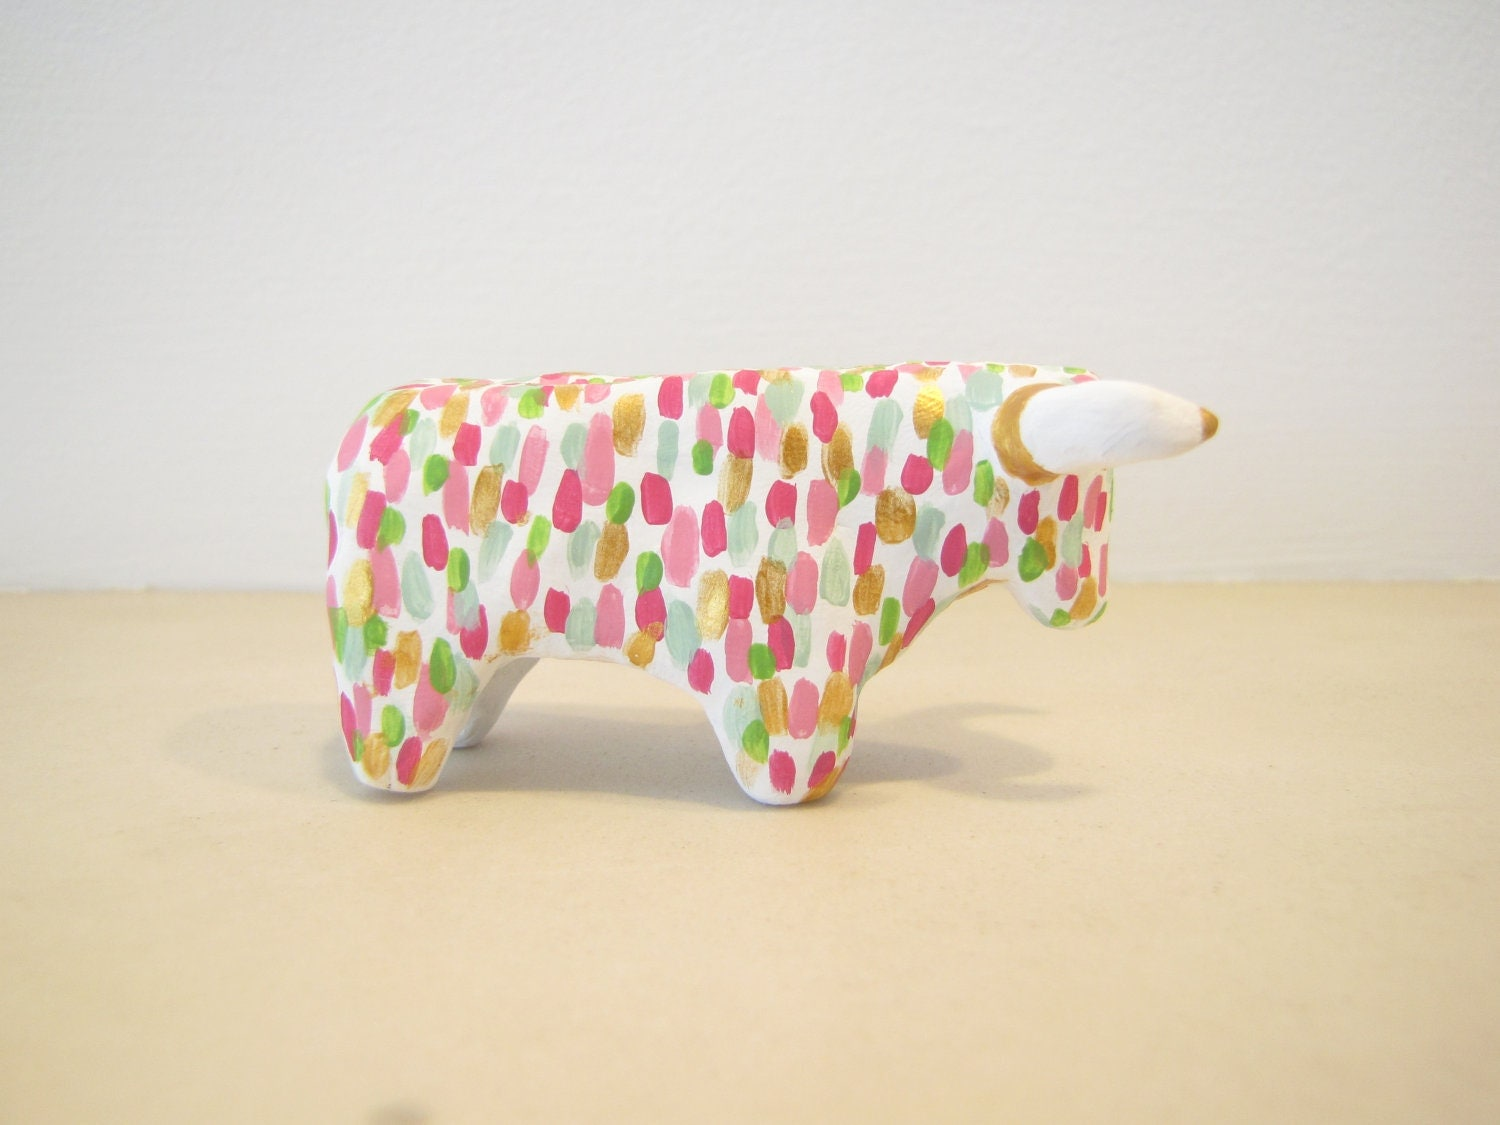 Party Animal Pinata Bull Miniature Figurine in Hand Painted Polymer Clay - fiesta pink, green, gold